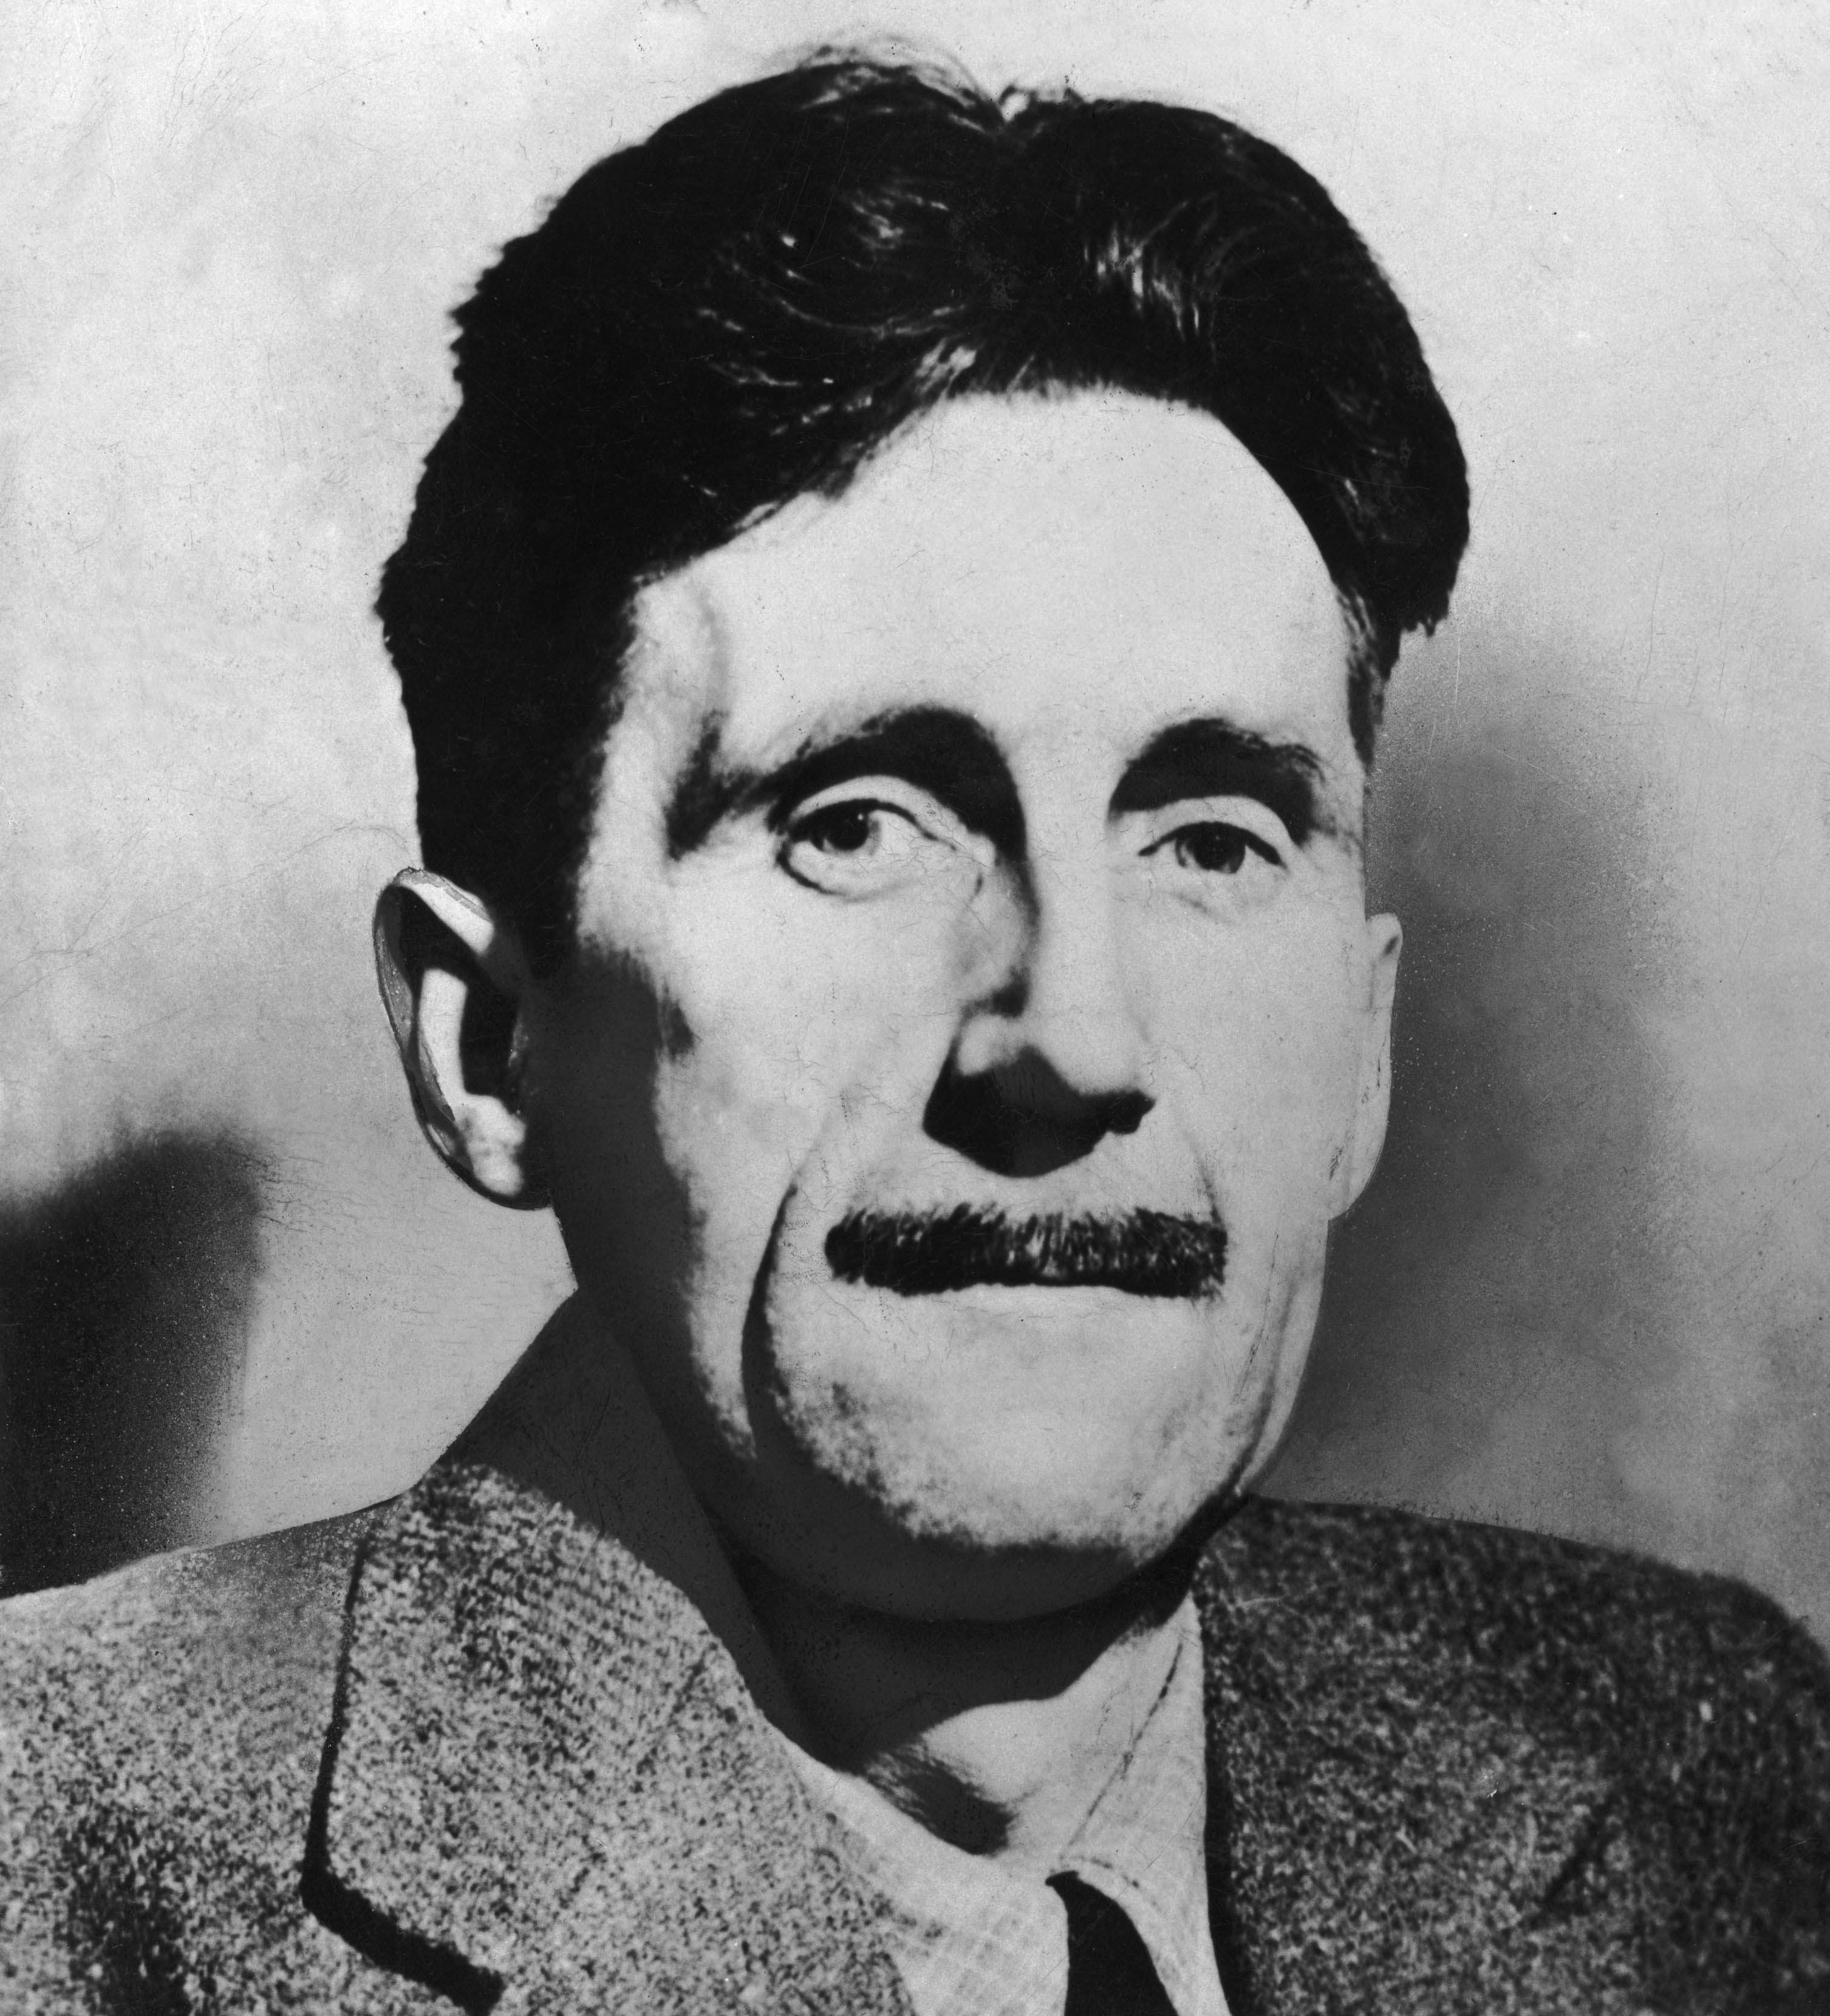 george orwell's face